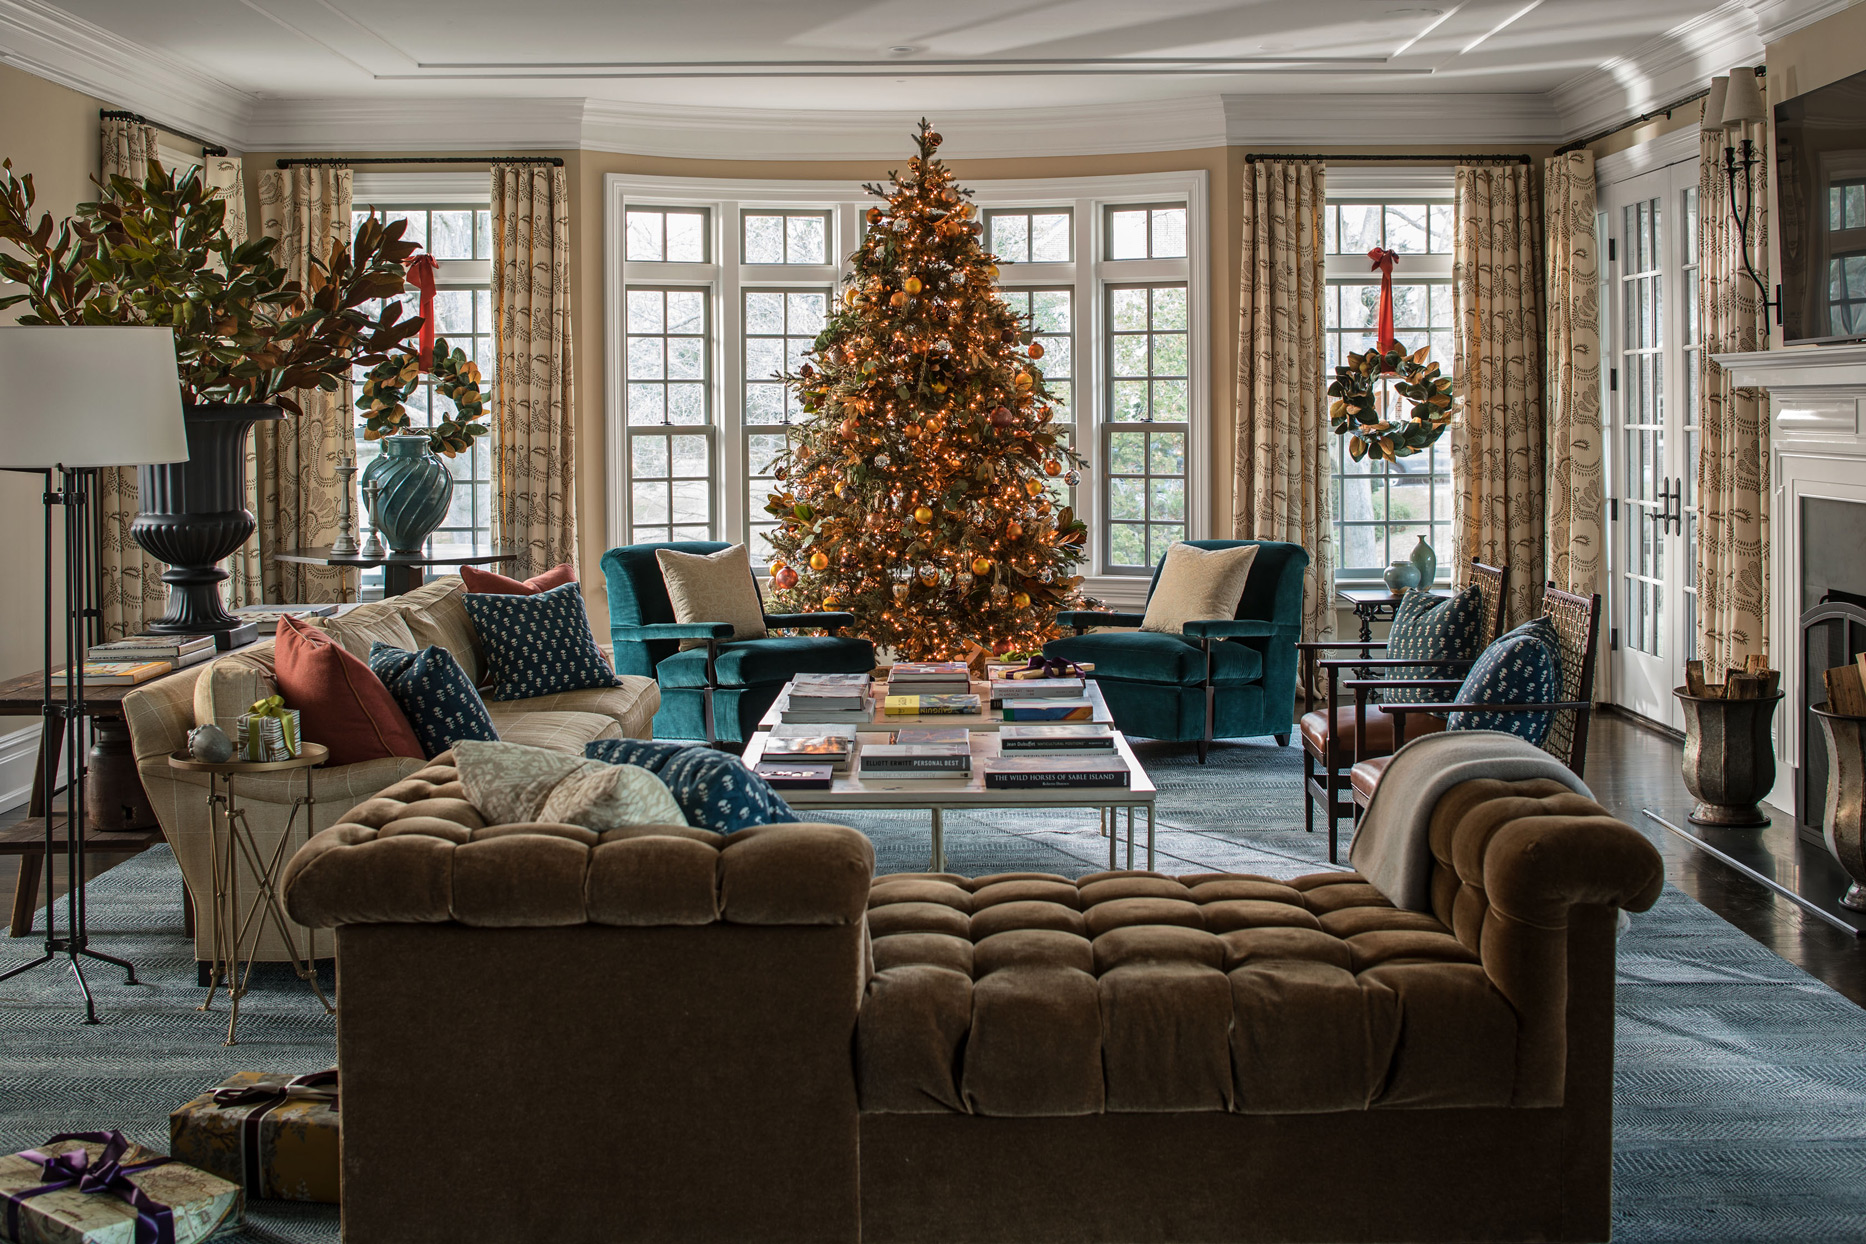 5-beautiful-design-moods-for-your-christmas-home-decor34